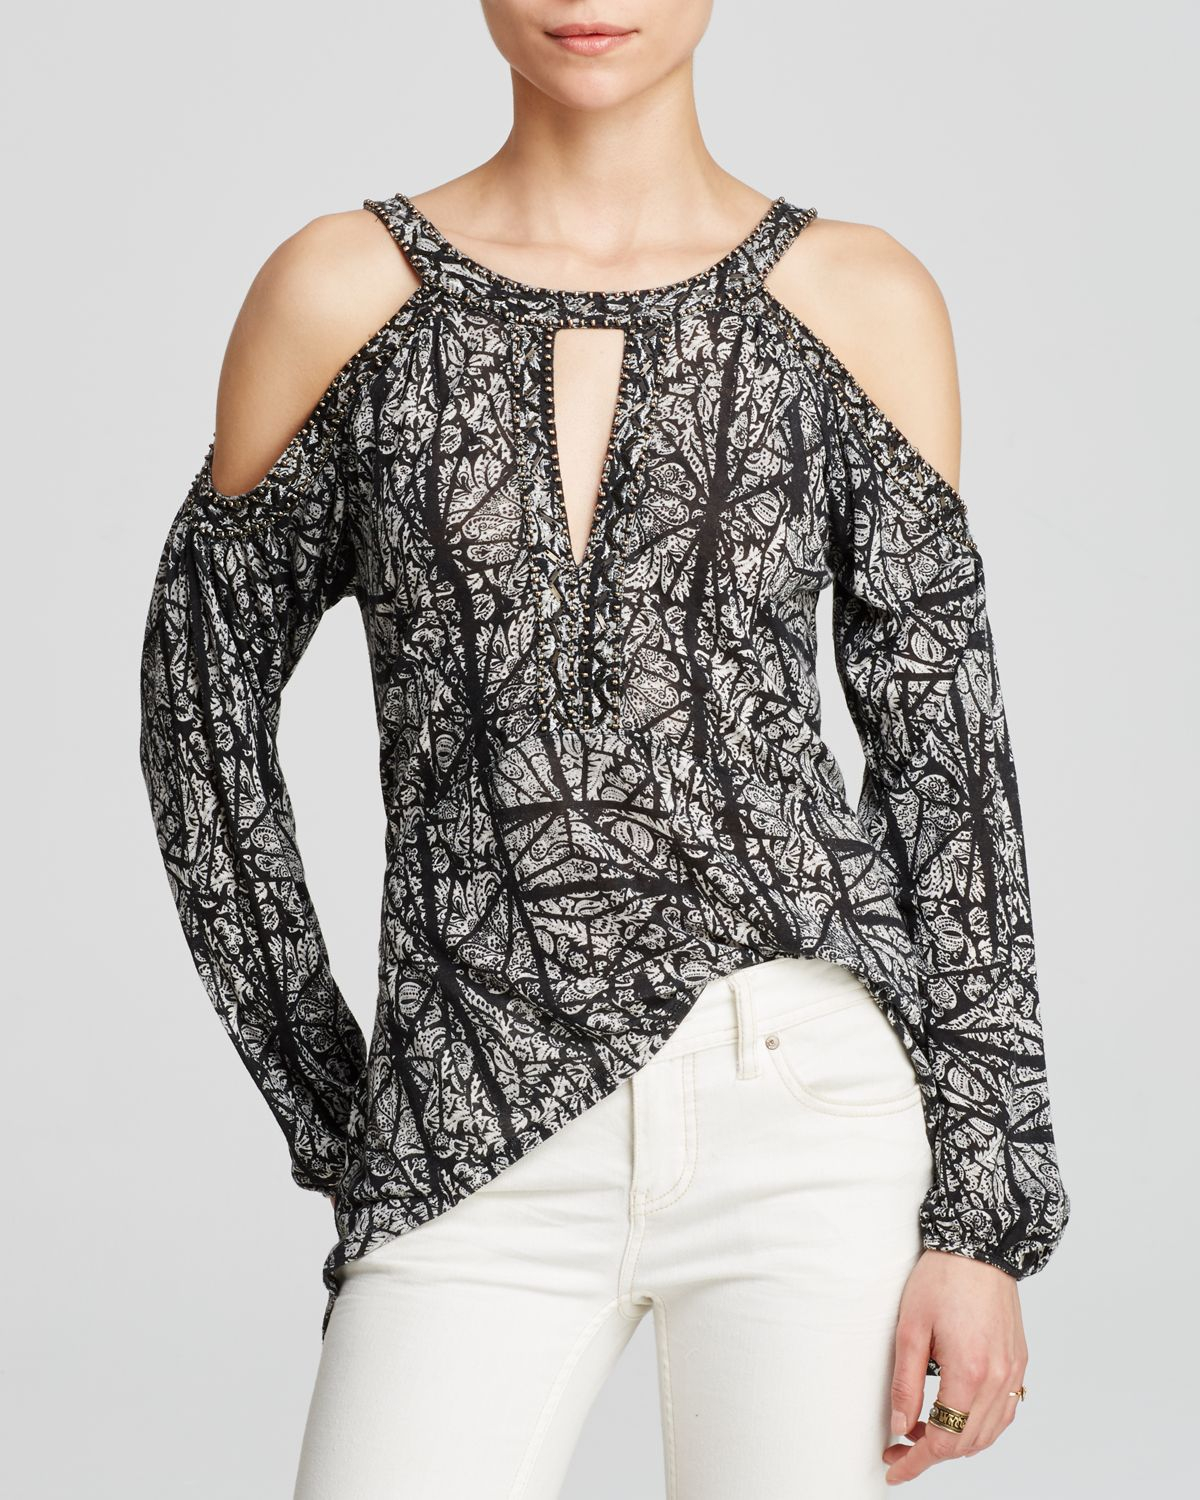 dd7492d69c1ca Free People Good Morning Cold Shoulder Top in Black - Lyst